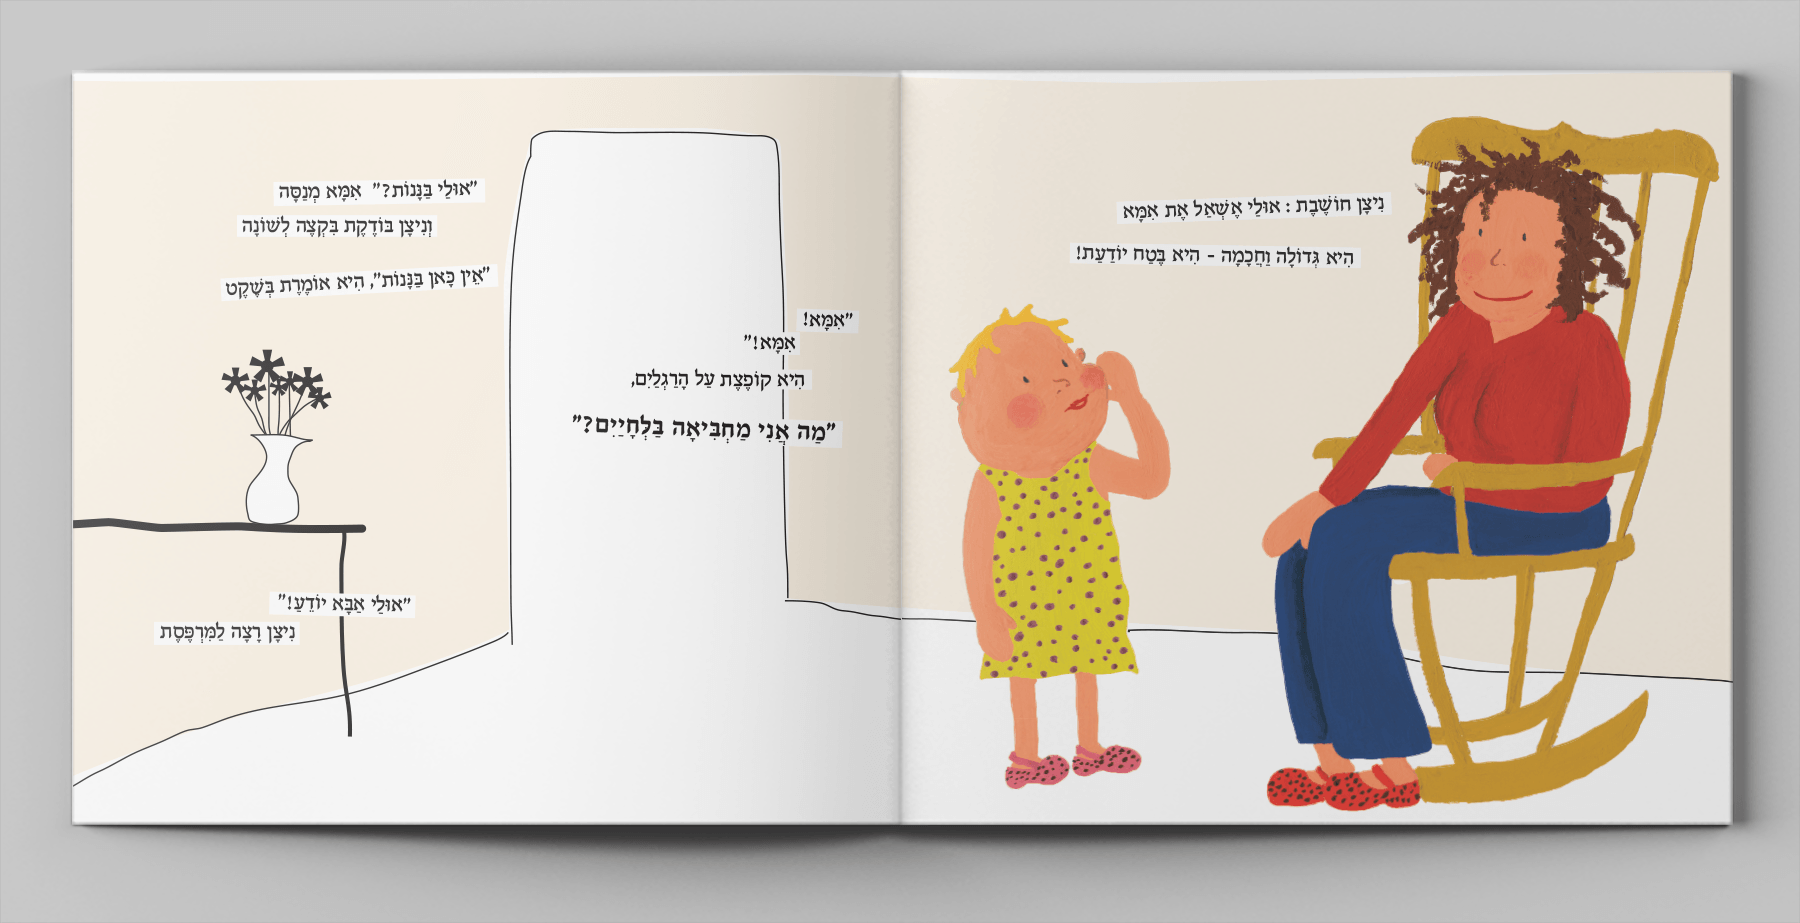 https://bigeyes.co.il/wp-content/uploads/2019/04/Nitzan-spreads-2.png